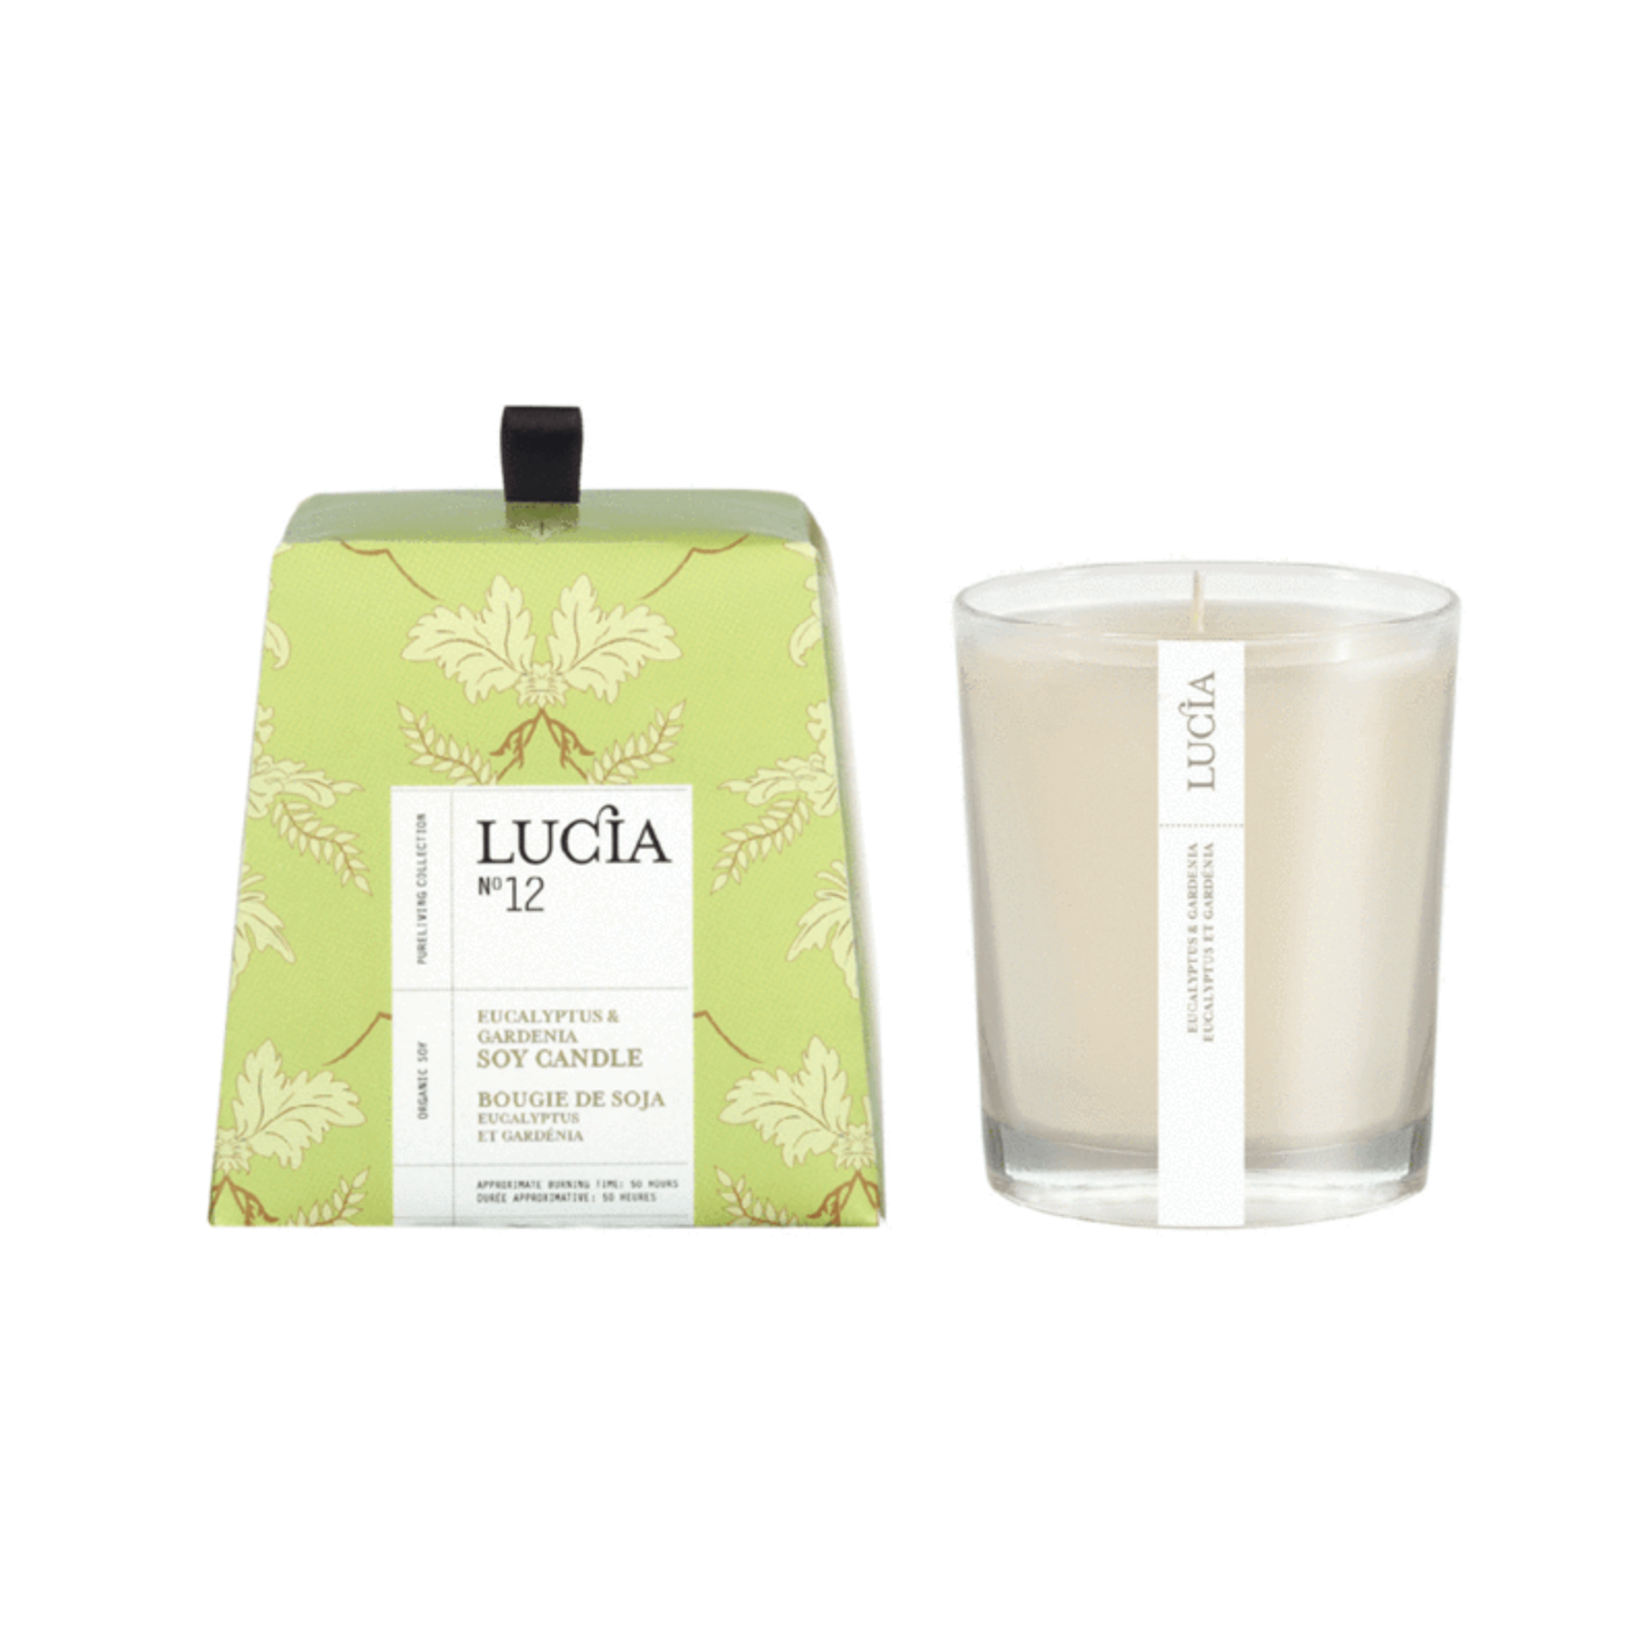 Lucia LUCIA Bougie 50H no12